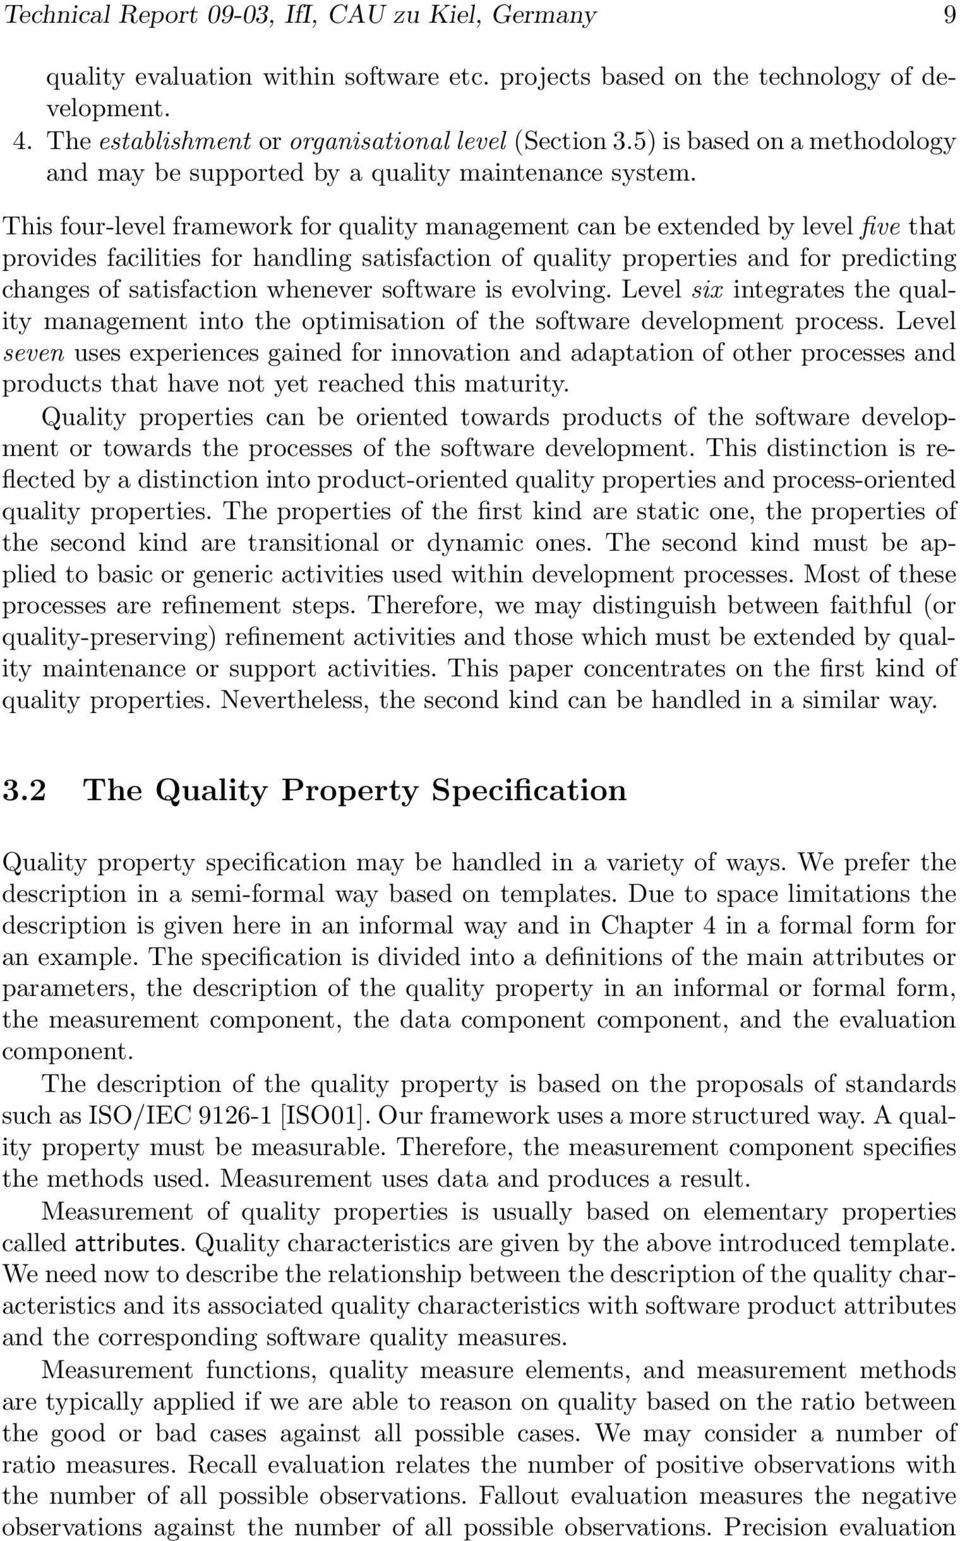 This four-level framework for quality management can be extended by level five that provides facilities for handling satisfaction of quality properties and for predicting changes of satisfaction